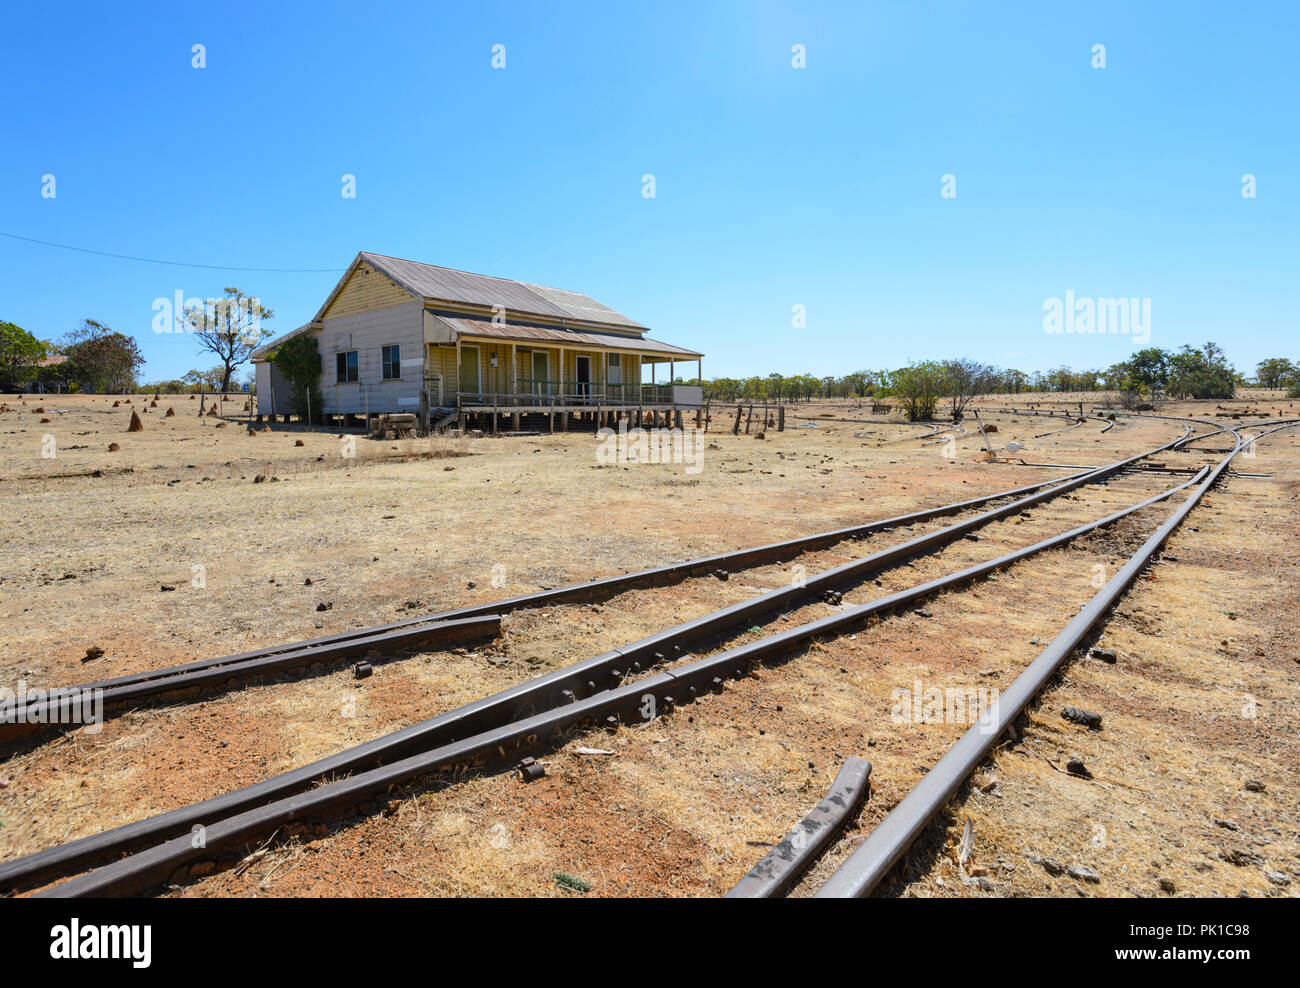 View of Almaden railway station, where the Savannahlander stops, Northern Queensland, QLD, Australia - Stock Image